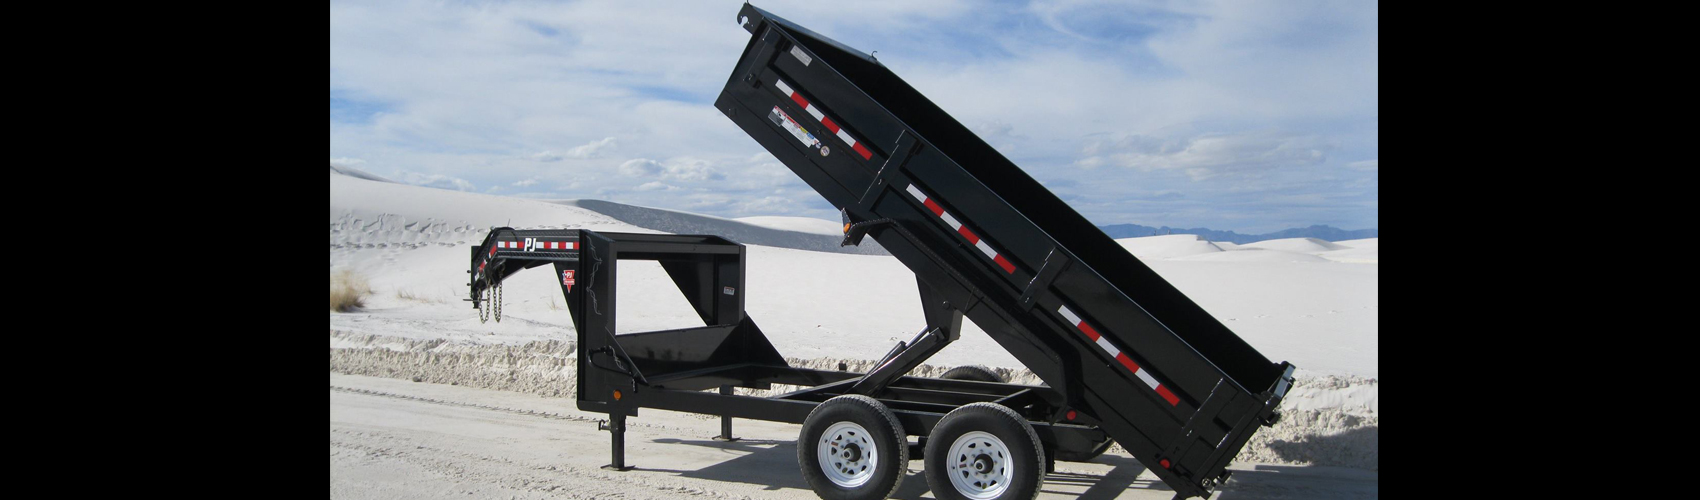 Home Cargo Trailers For Trailer S In Pa New York Jersey And Maryland